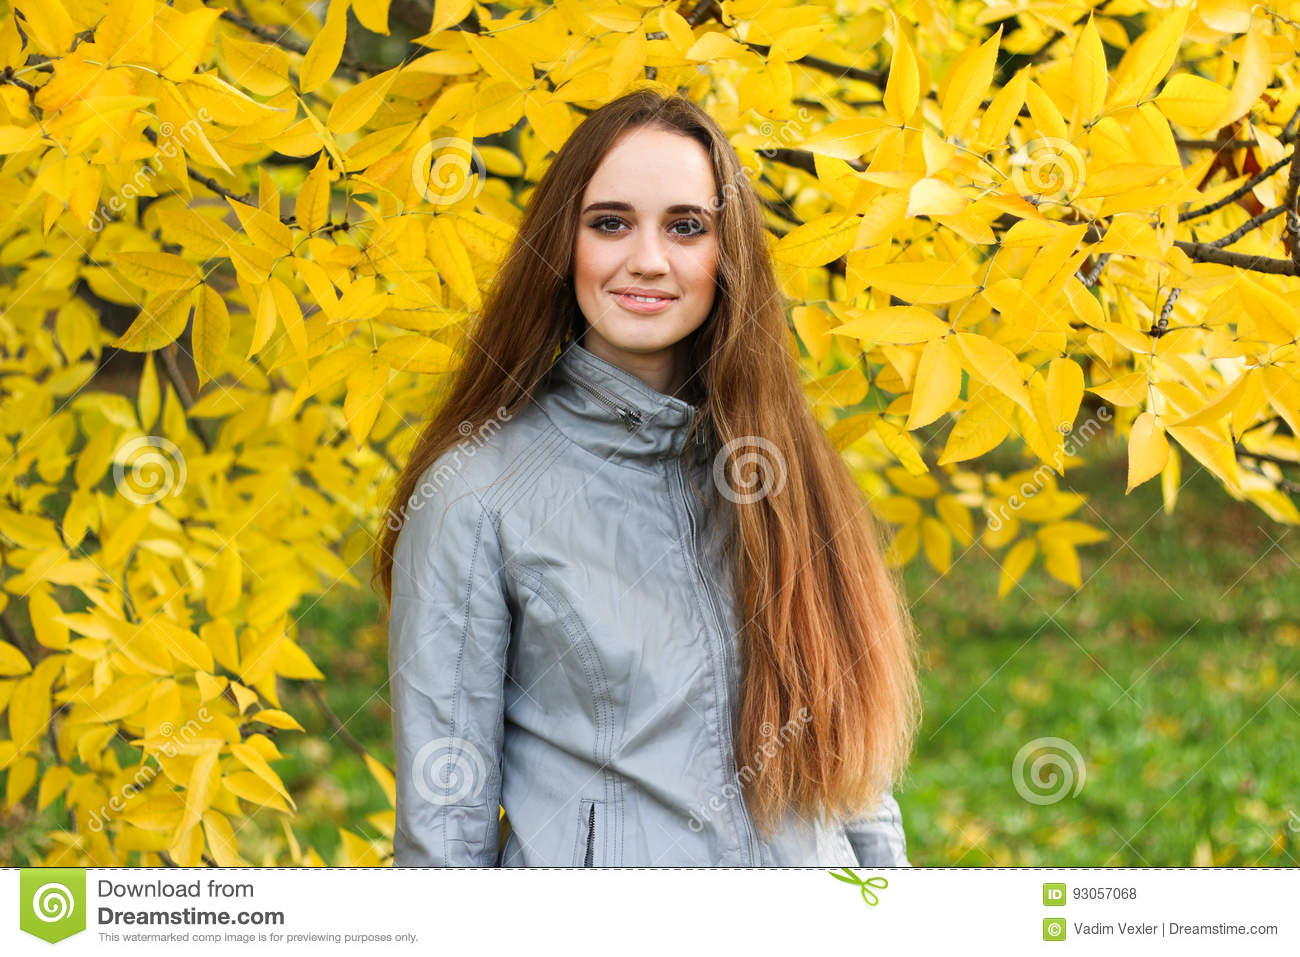 Beautiful young woman in leather jacket and black skirt posing in autumn park.